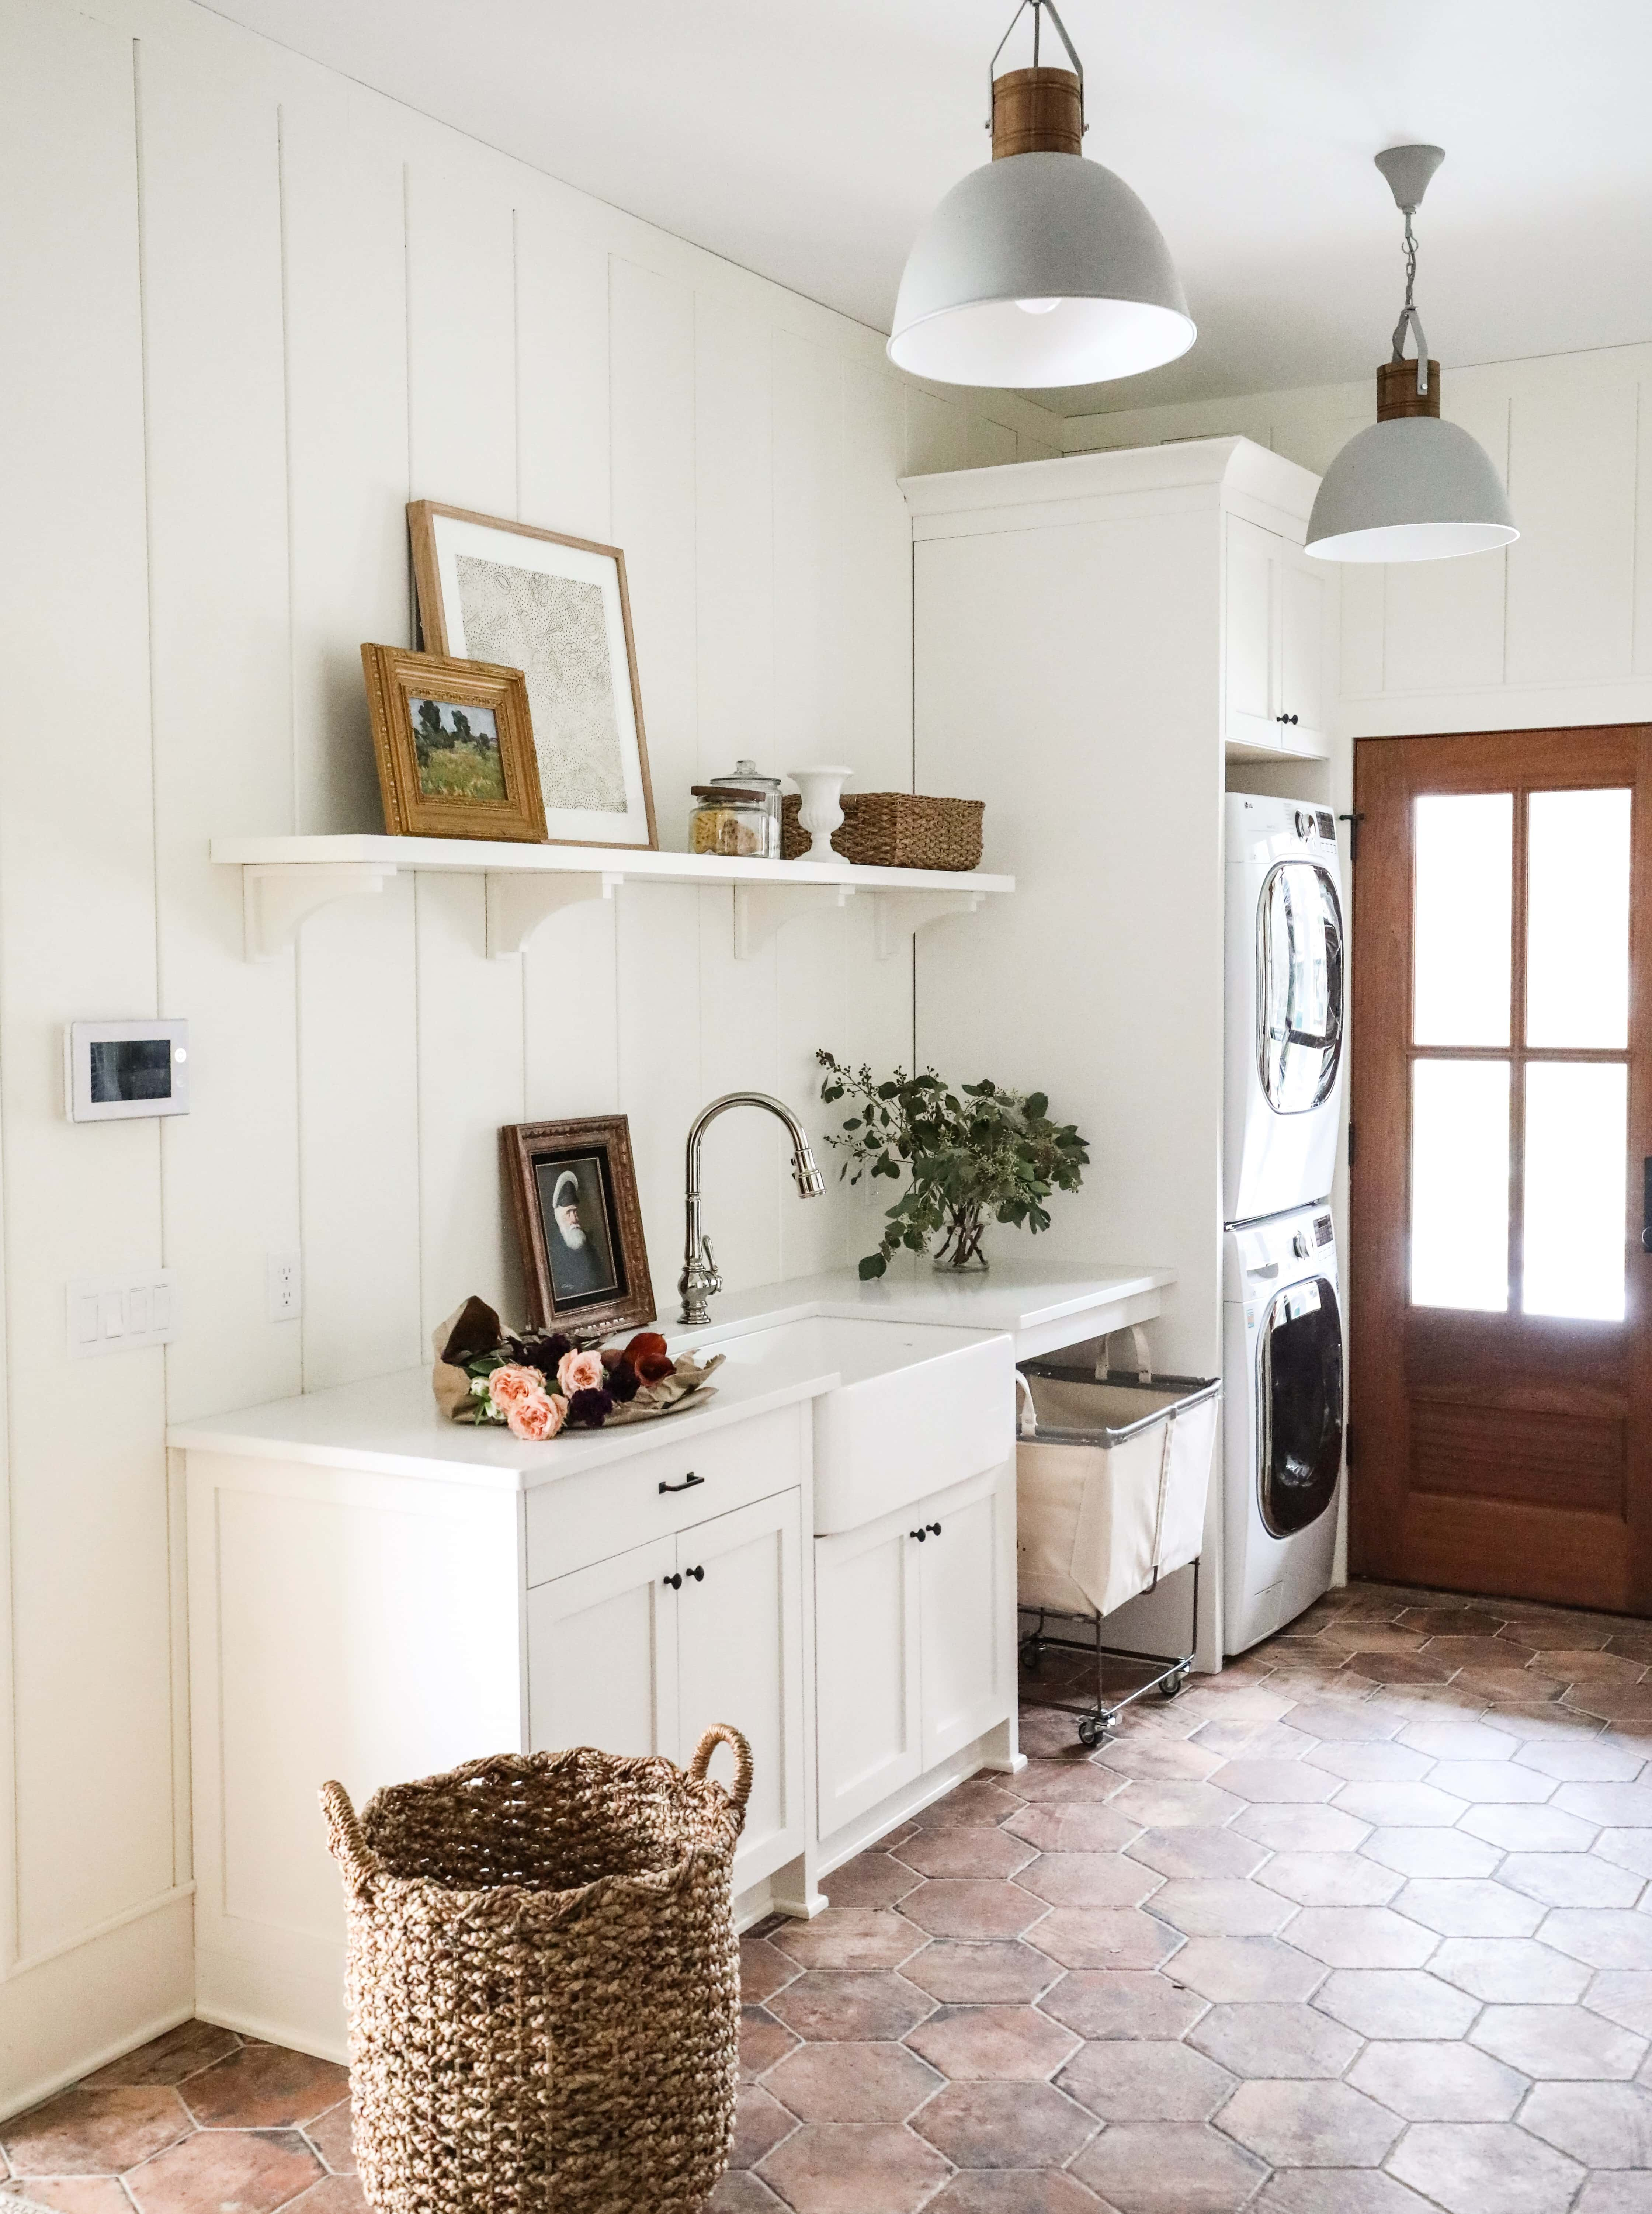 my favorite interior design style series | modern farmhouse | beautiful modern farmhouse spaces | traditional, rustic, clean, airy, fresh